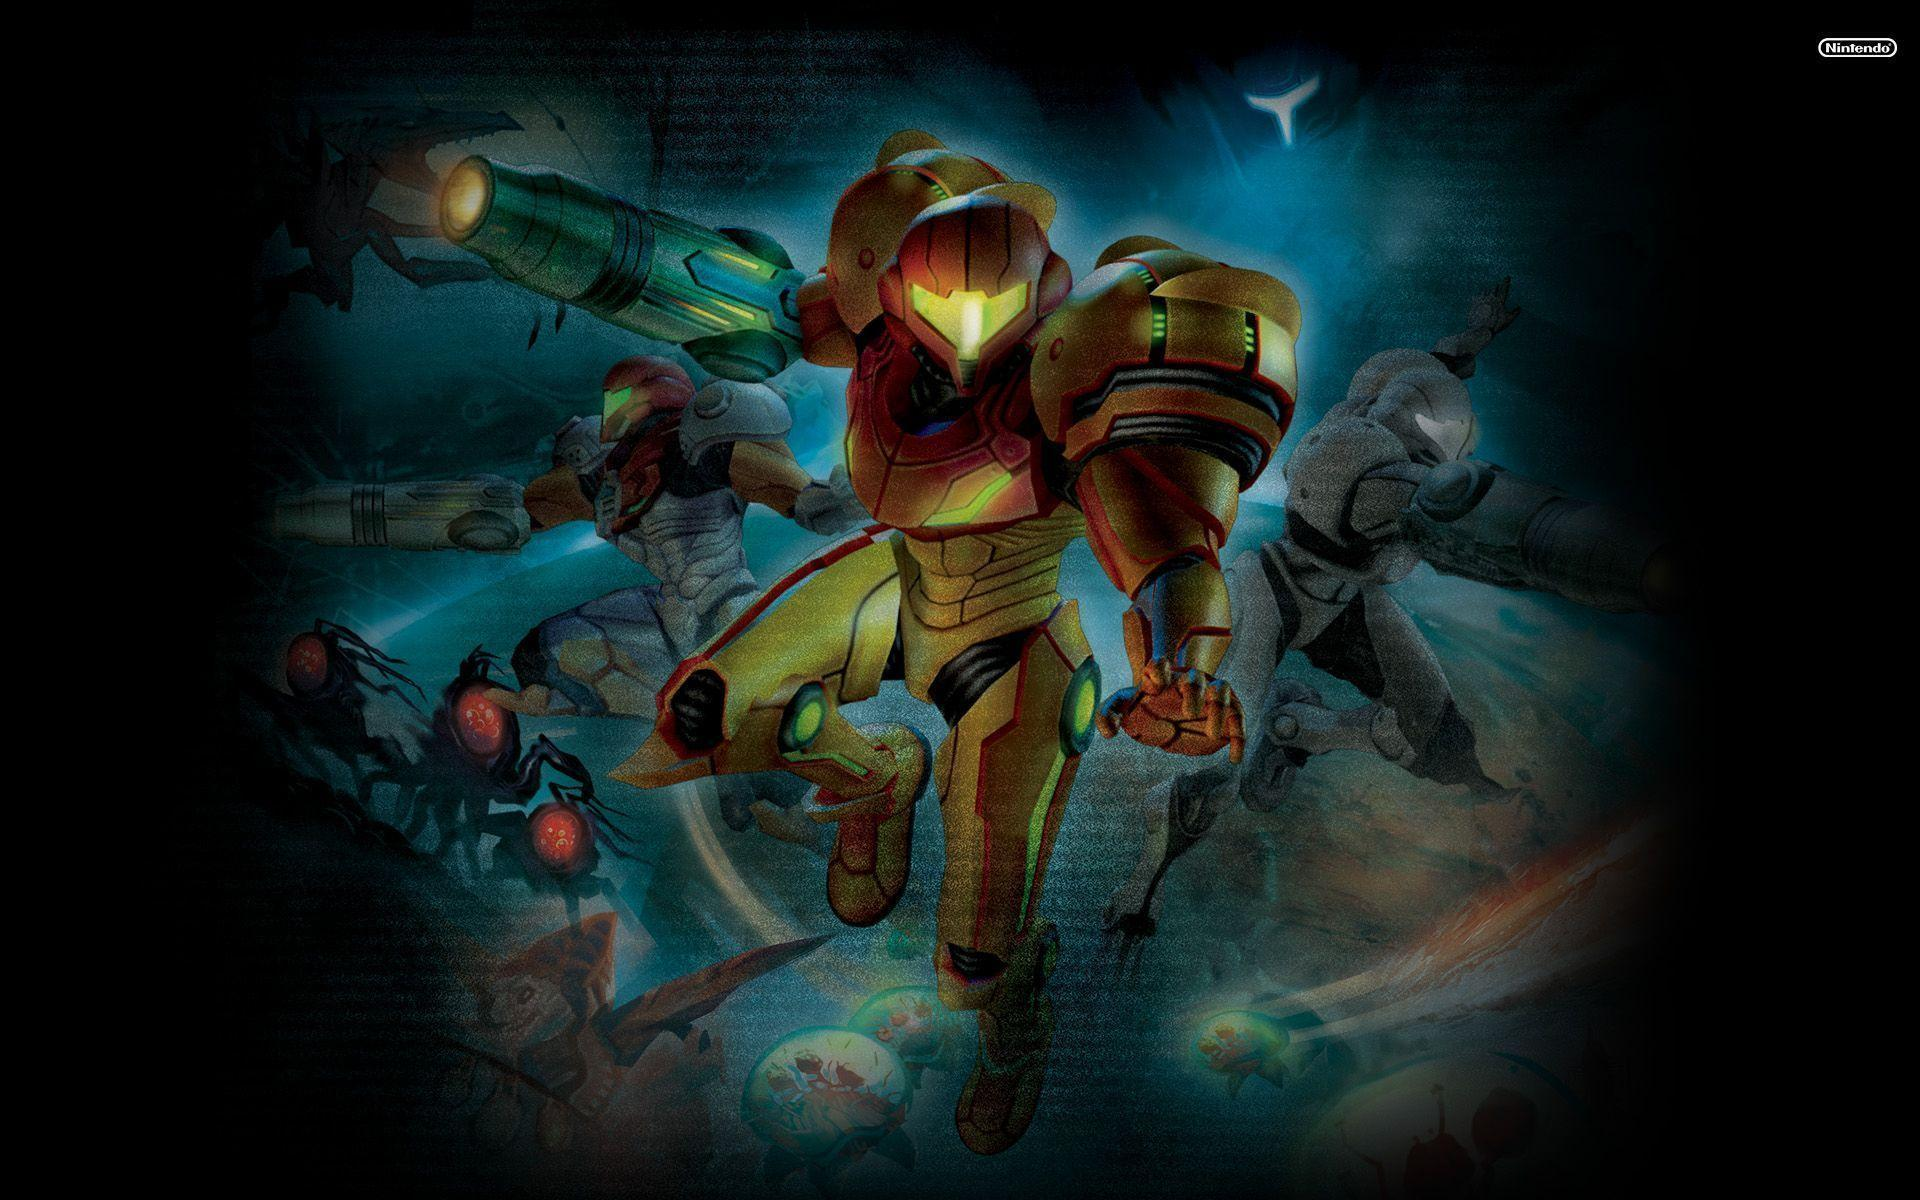 Metroid Prime Trilogy picture Wallpapers